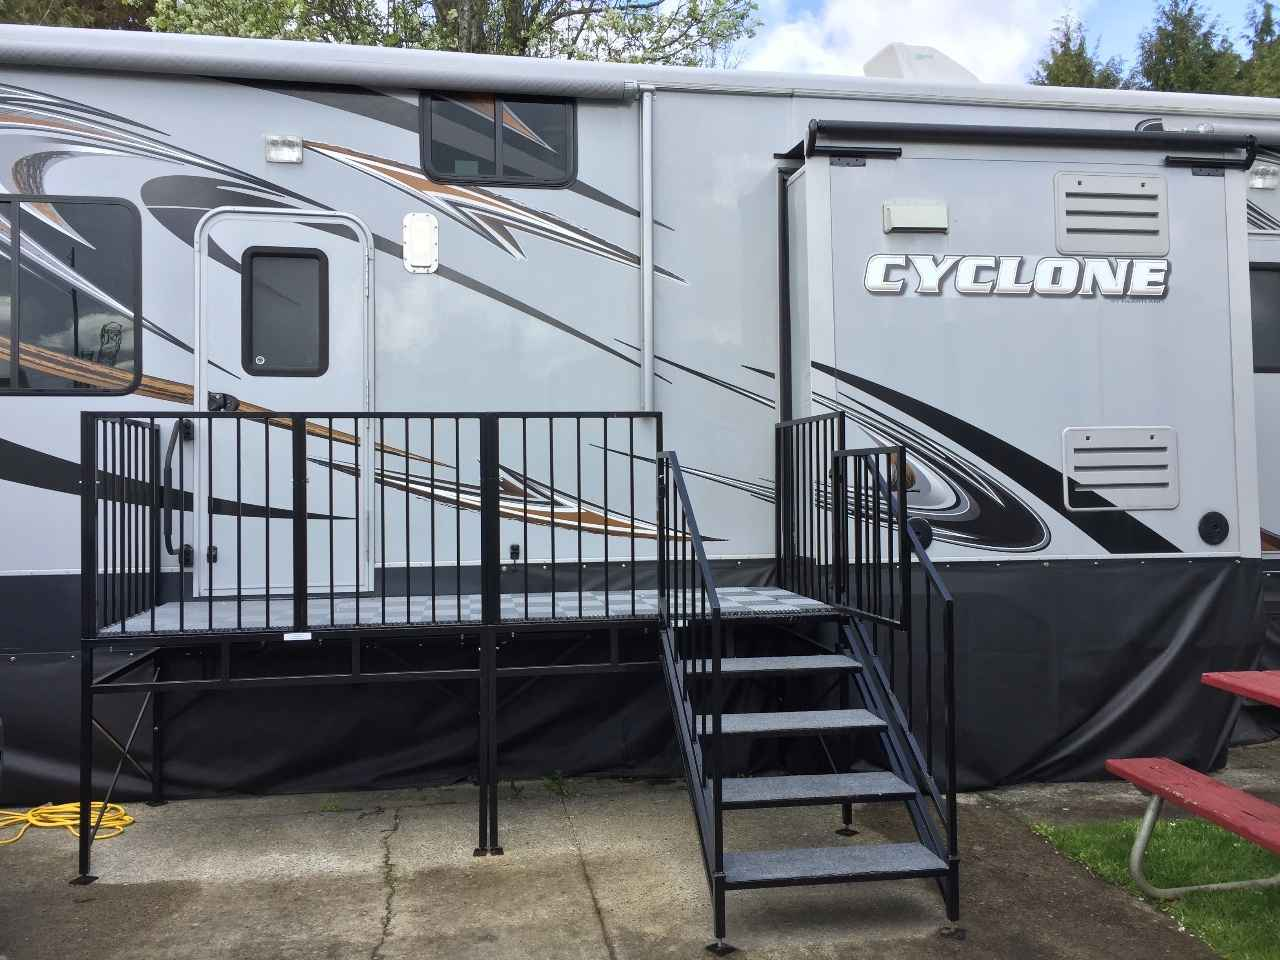 2013 used heartland cyclone 4100 king toy hauler in oregon or. Black Bedroom Furniture Sets. Home Design Ideas